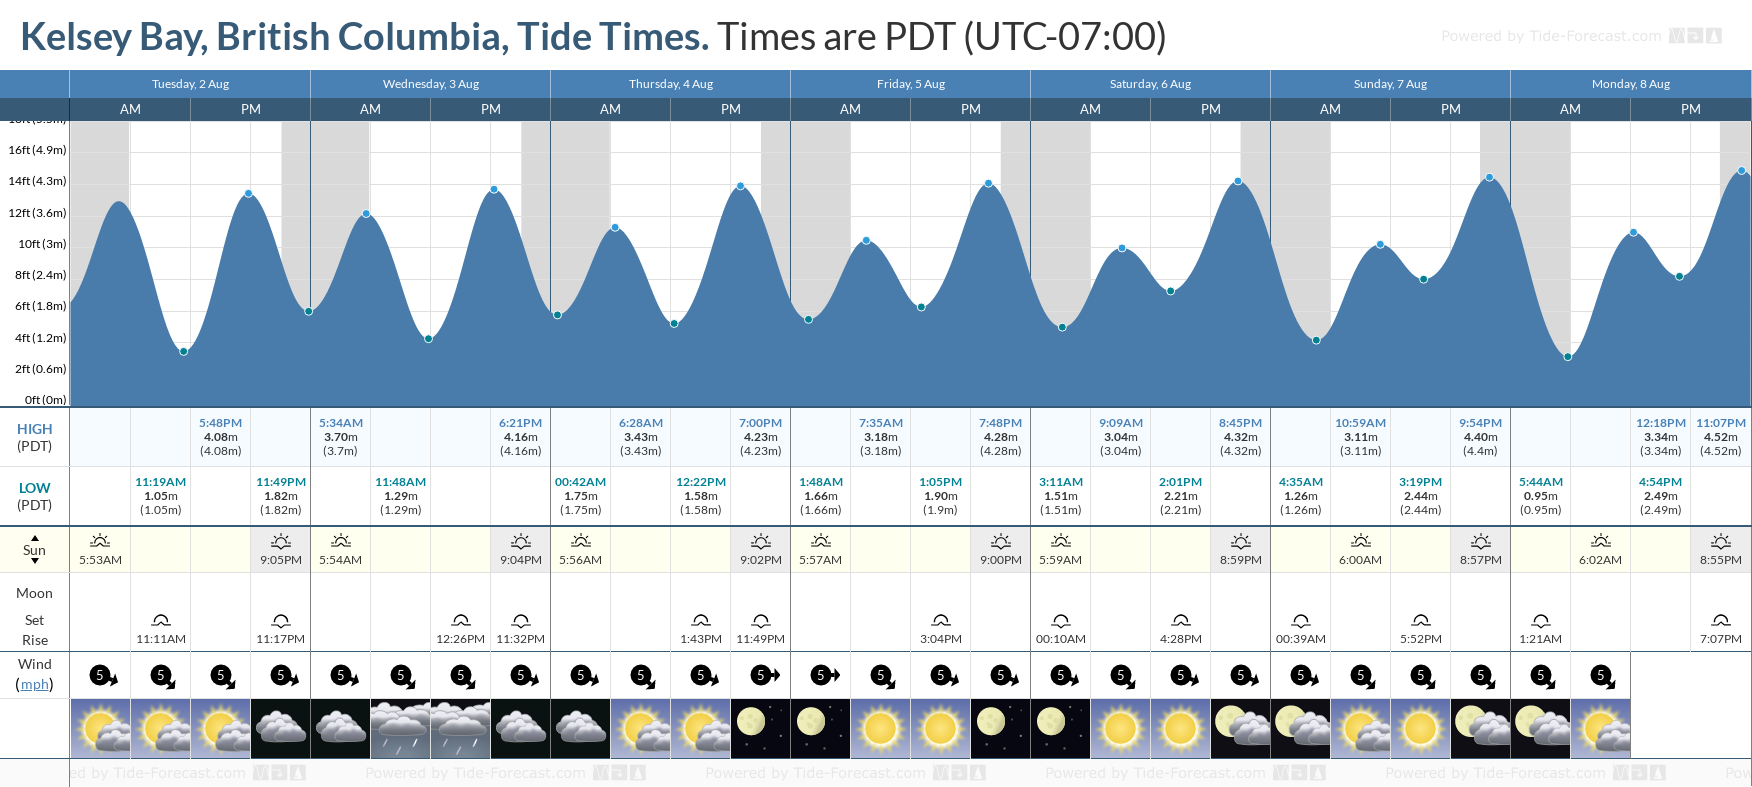 Kelsey Bay, British Columbia Tide Chart including high and low tide tide times for the next 7 days